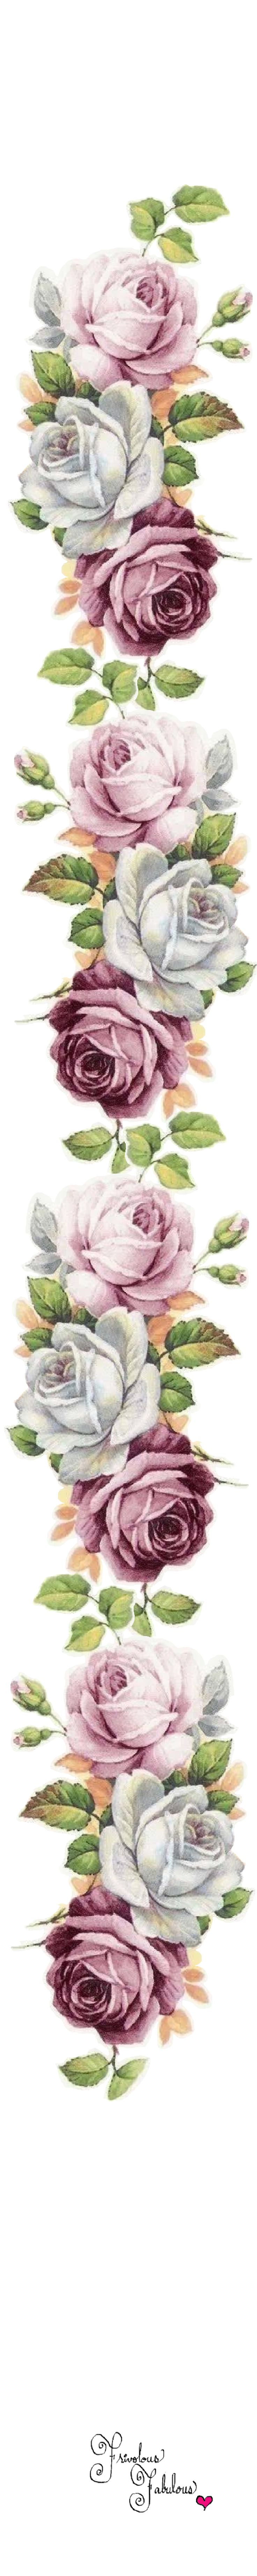 roses for lilac cottage